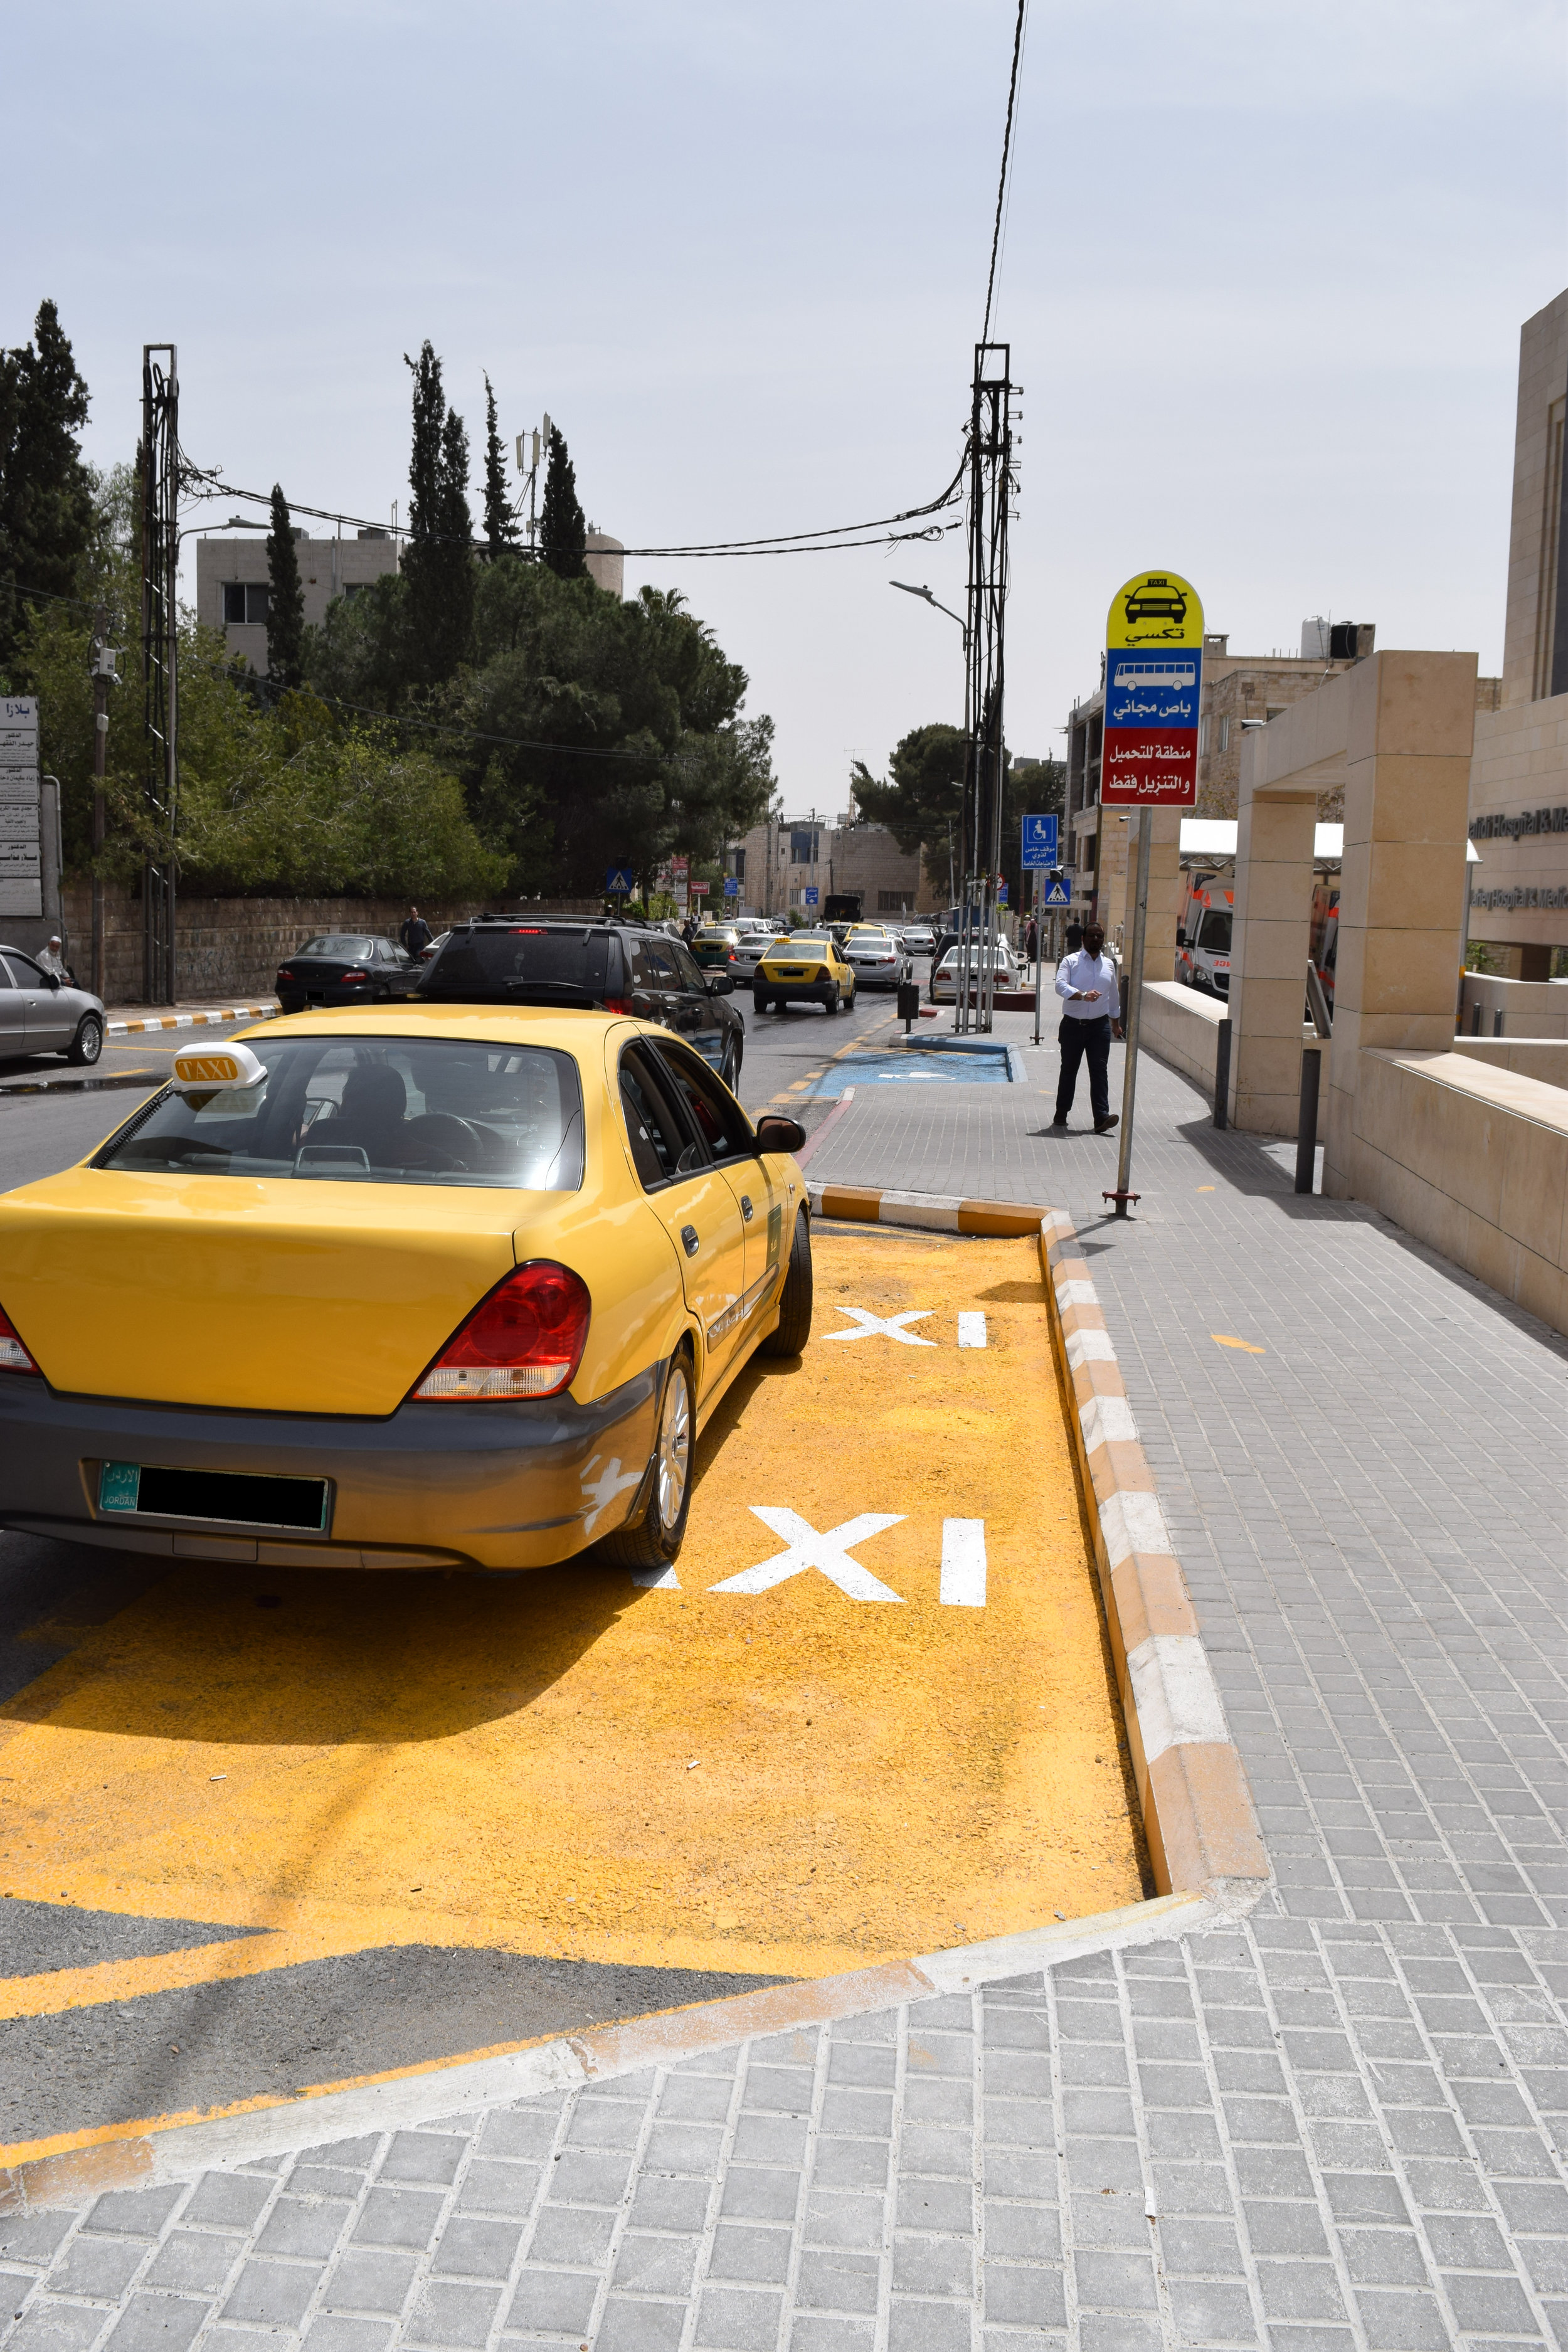 A taxi parked in a taxi parking zone, but a part of the car juts out into the street.